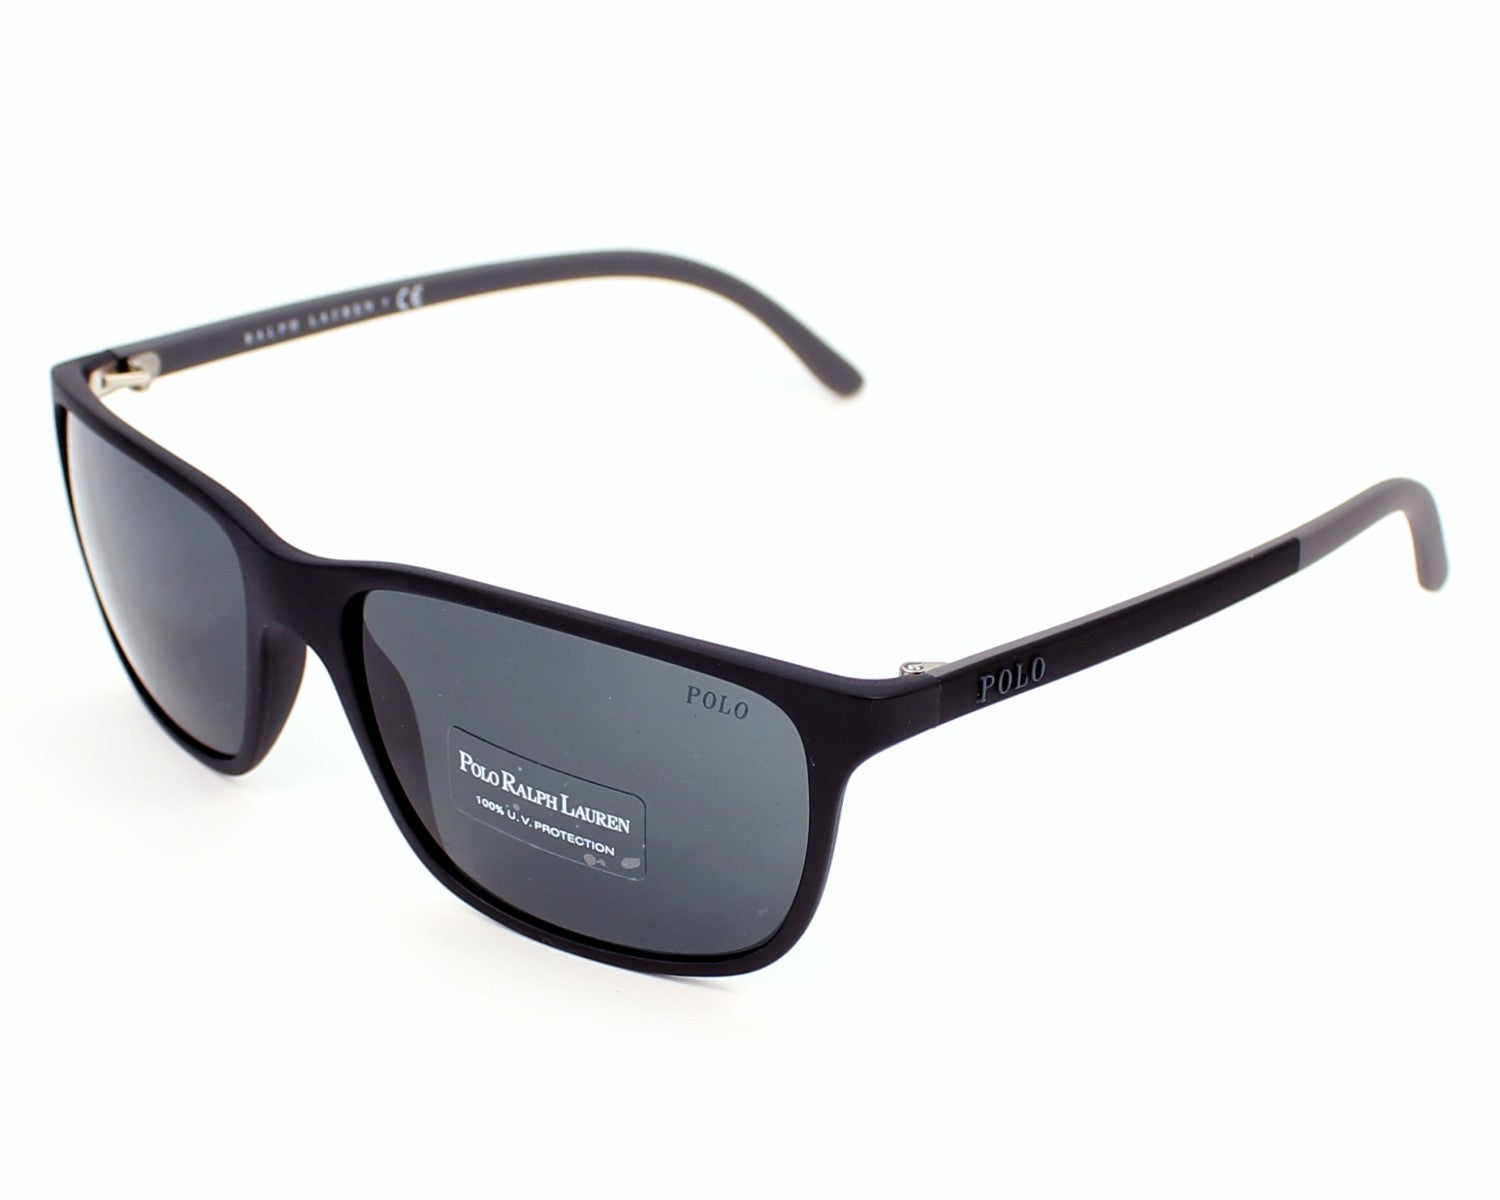 Polo Ralph Lauren Sunglasses PH4092 5534/87